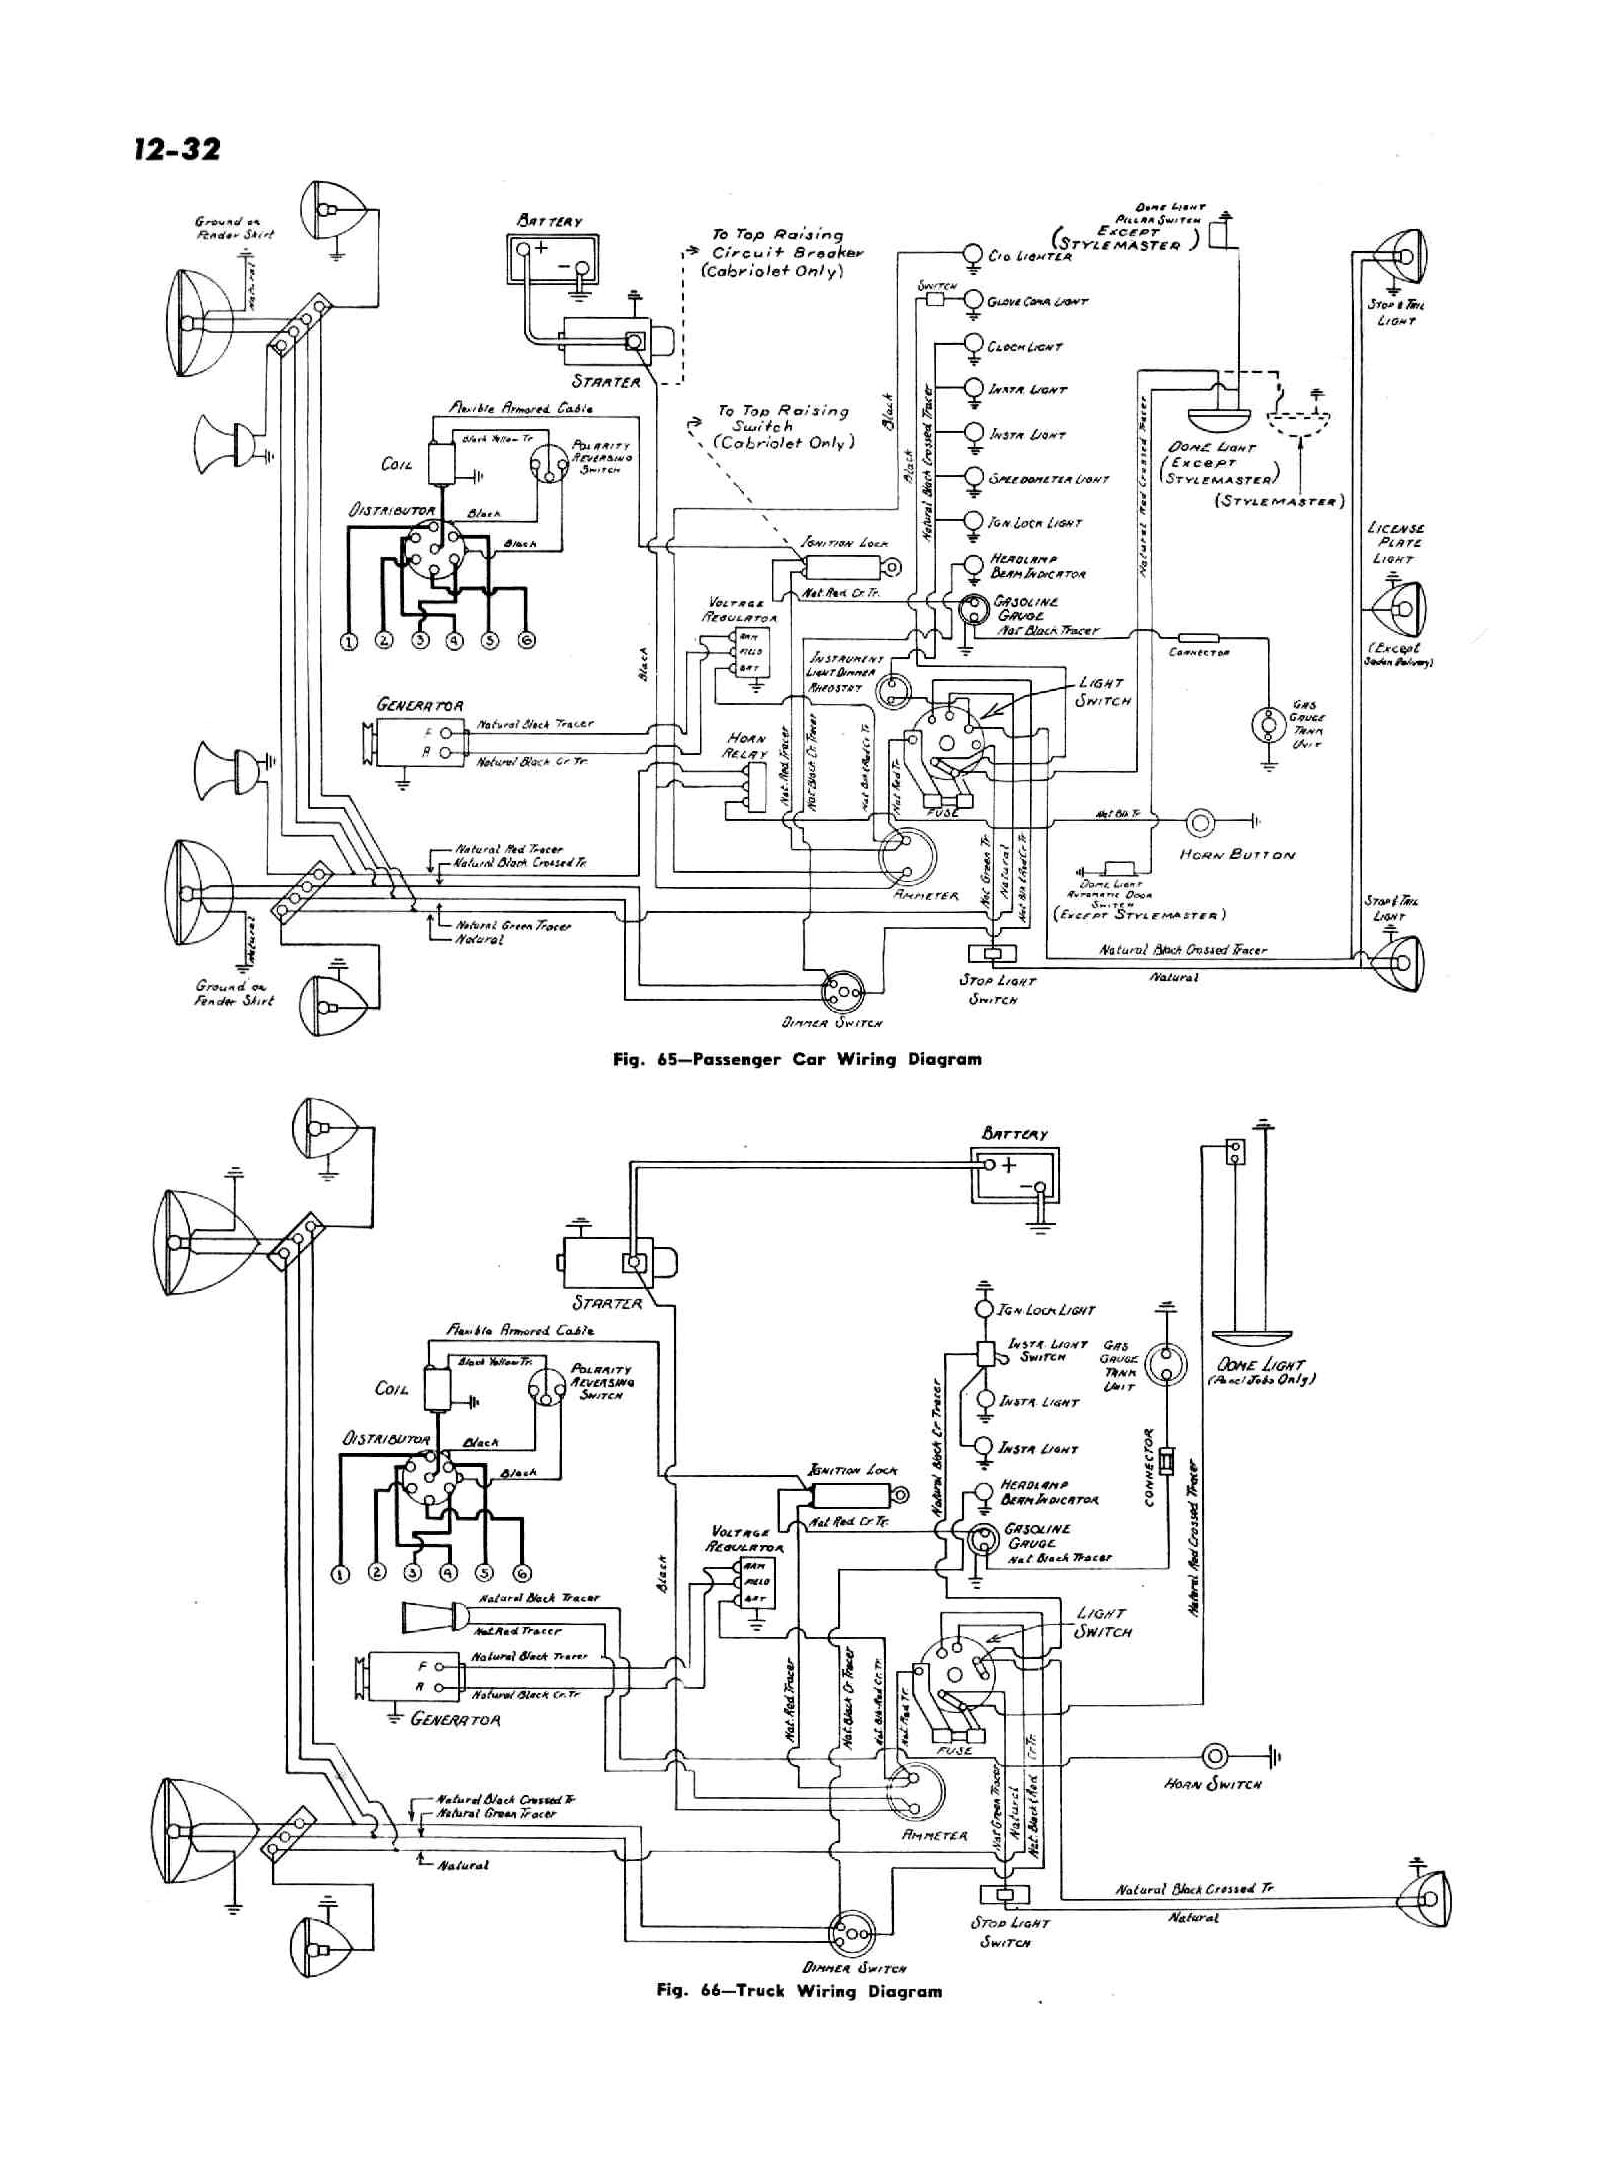 4247csm1232 chevy wiper wiring diagram,wiper free download printable wiring,1963 Bel Air Wiring Diagram